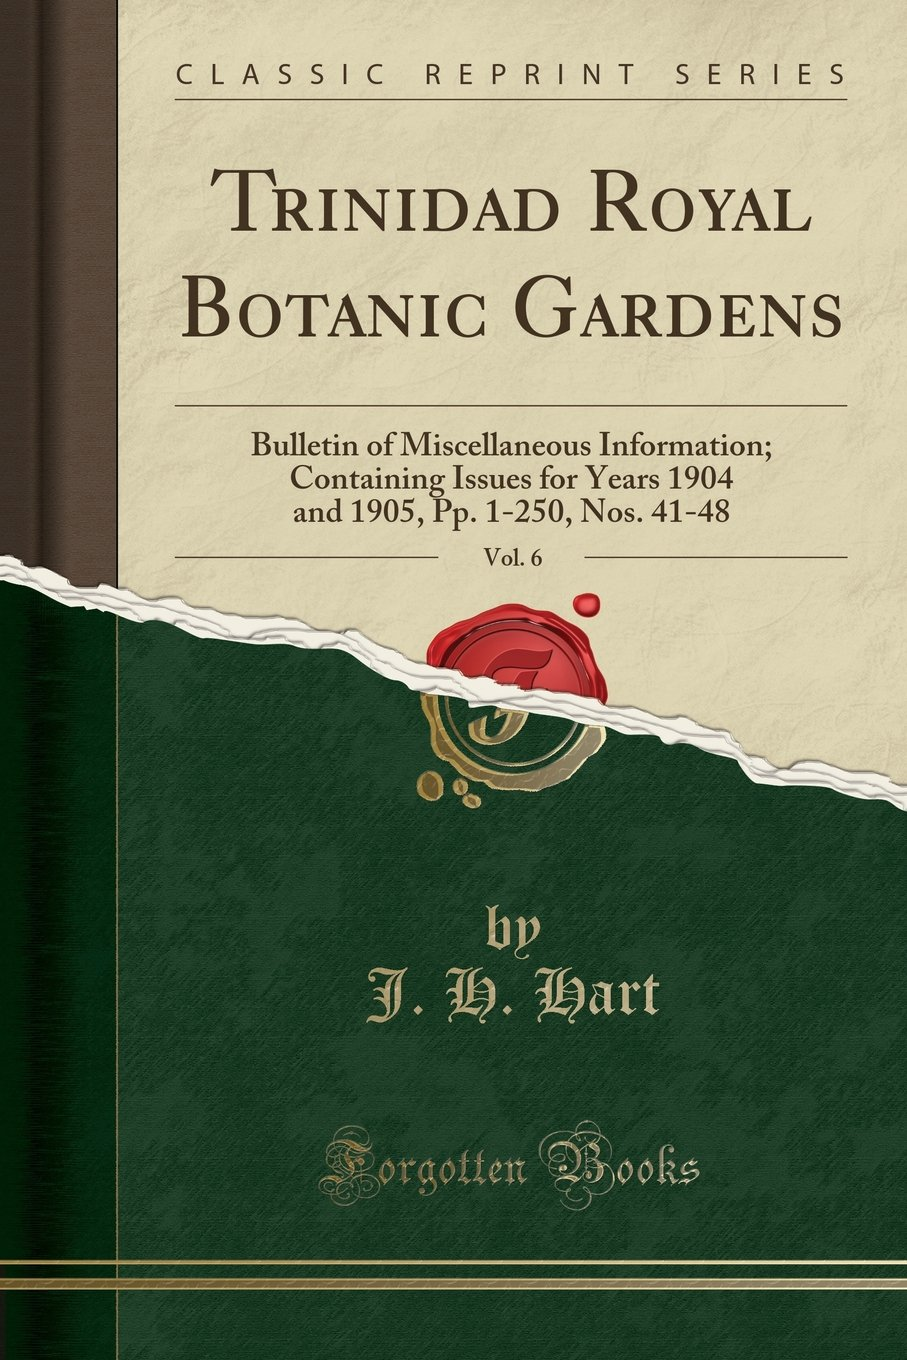 Trinidad Royal Botanic Gardens, Vol. 6: Bulletin of Miscellaneous Information; Containing Issues for Years 1904 and 1905, Pp. 1-250, Nos. 41-48 (Classic Reprint) pdf